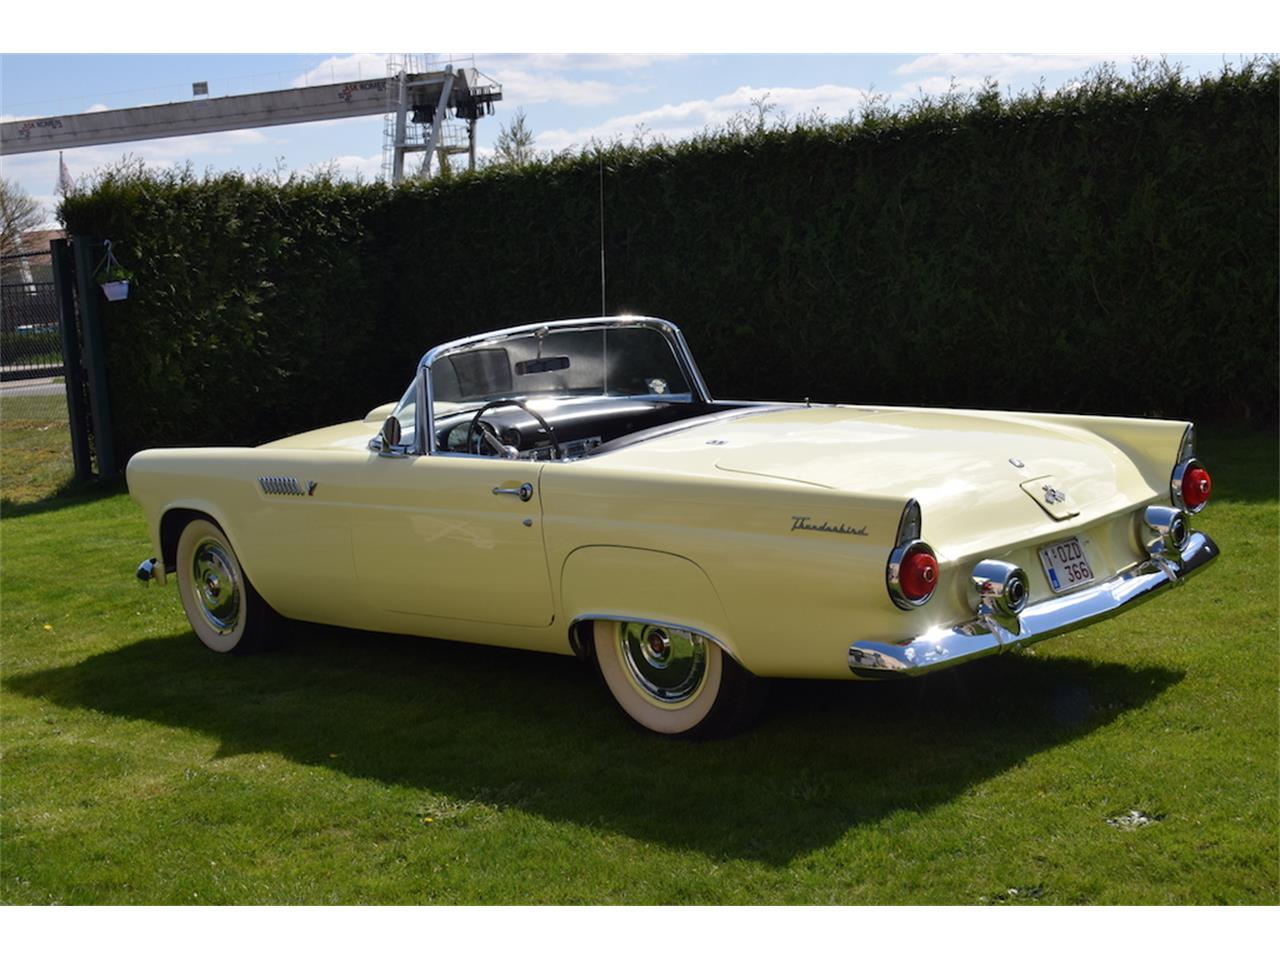 Large Picture of Classic 1955 Thunderbird located in europe Offered by a Private Seller - HHJ2